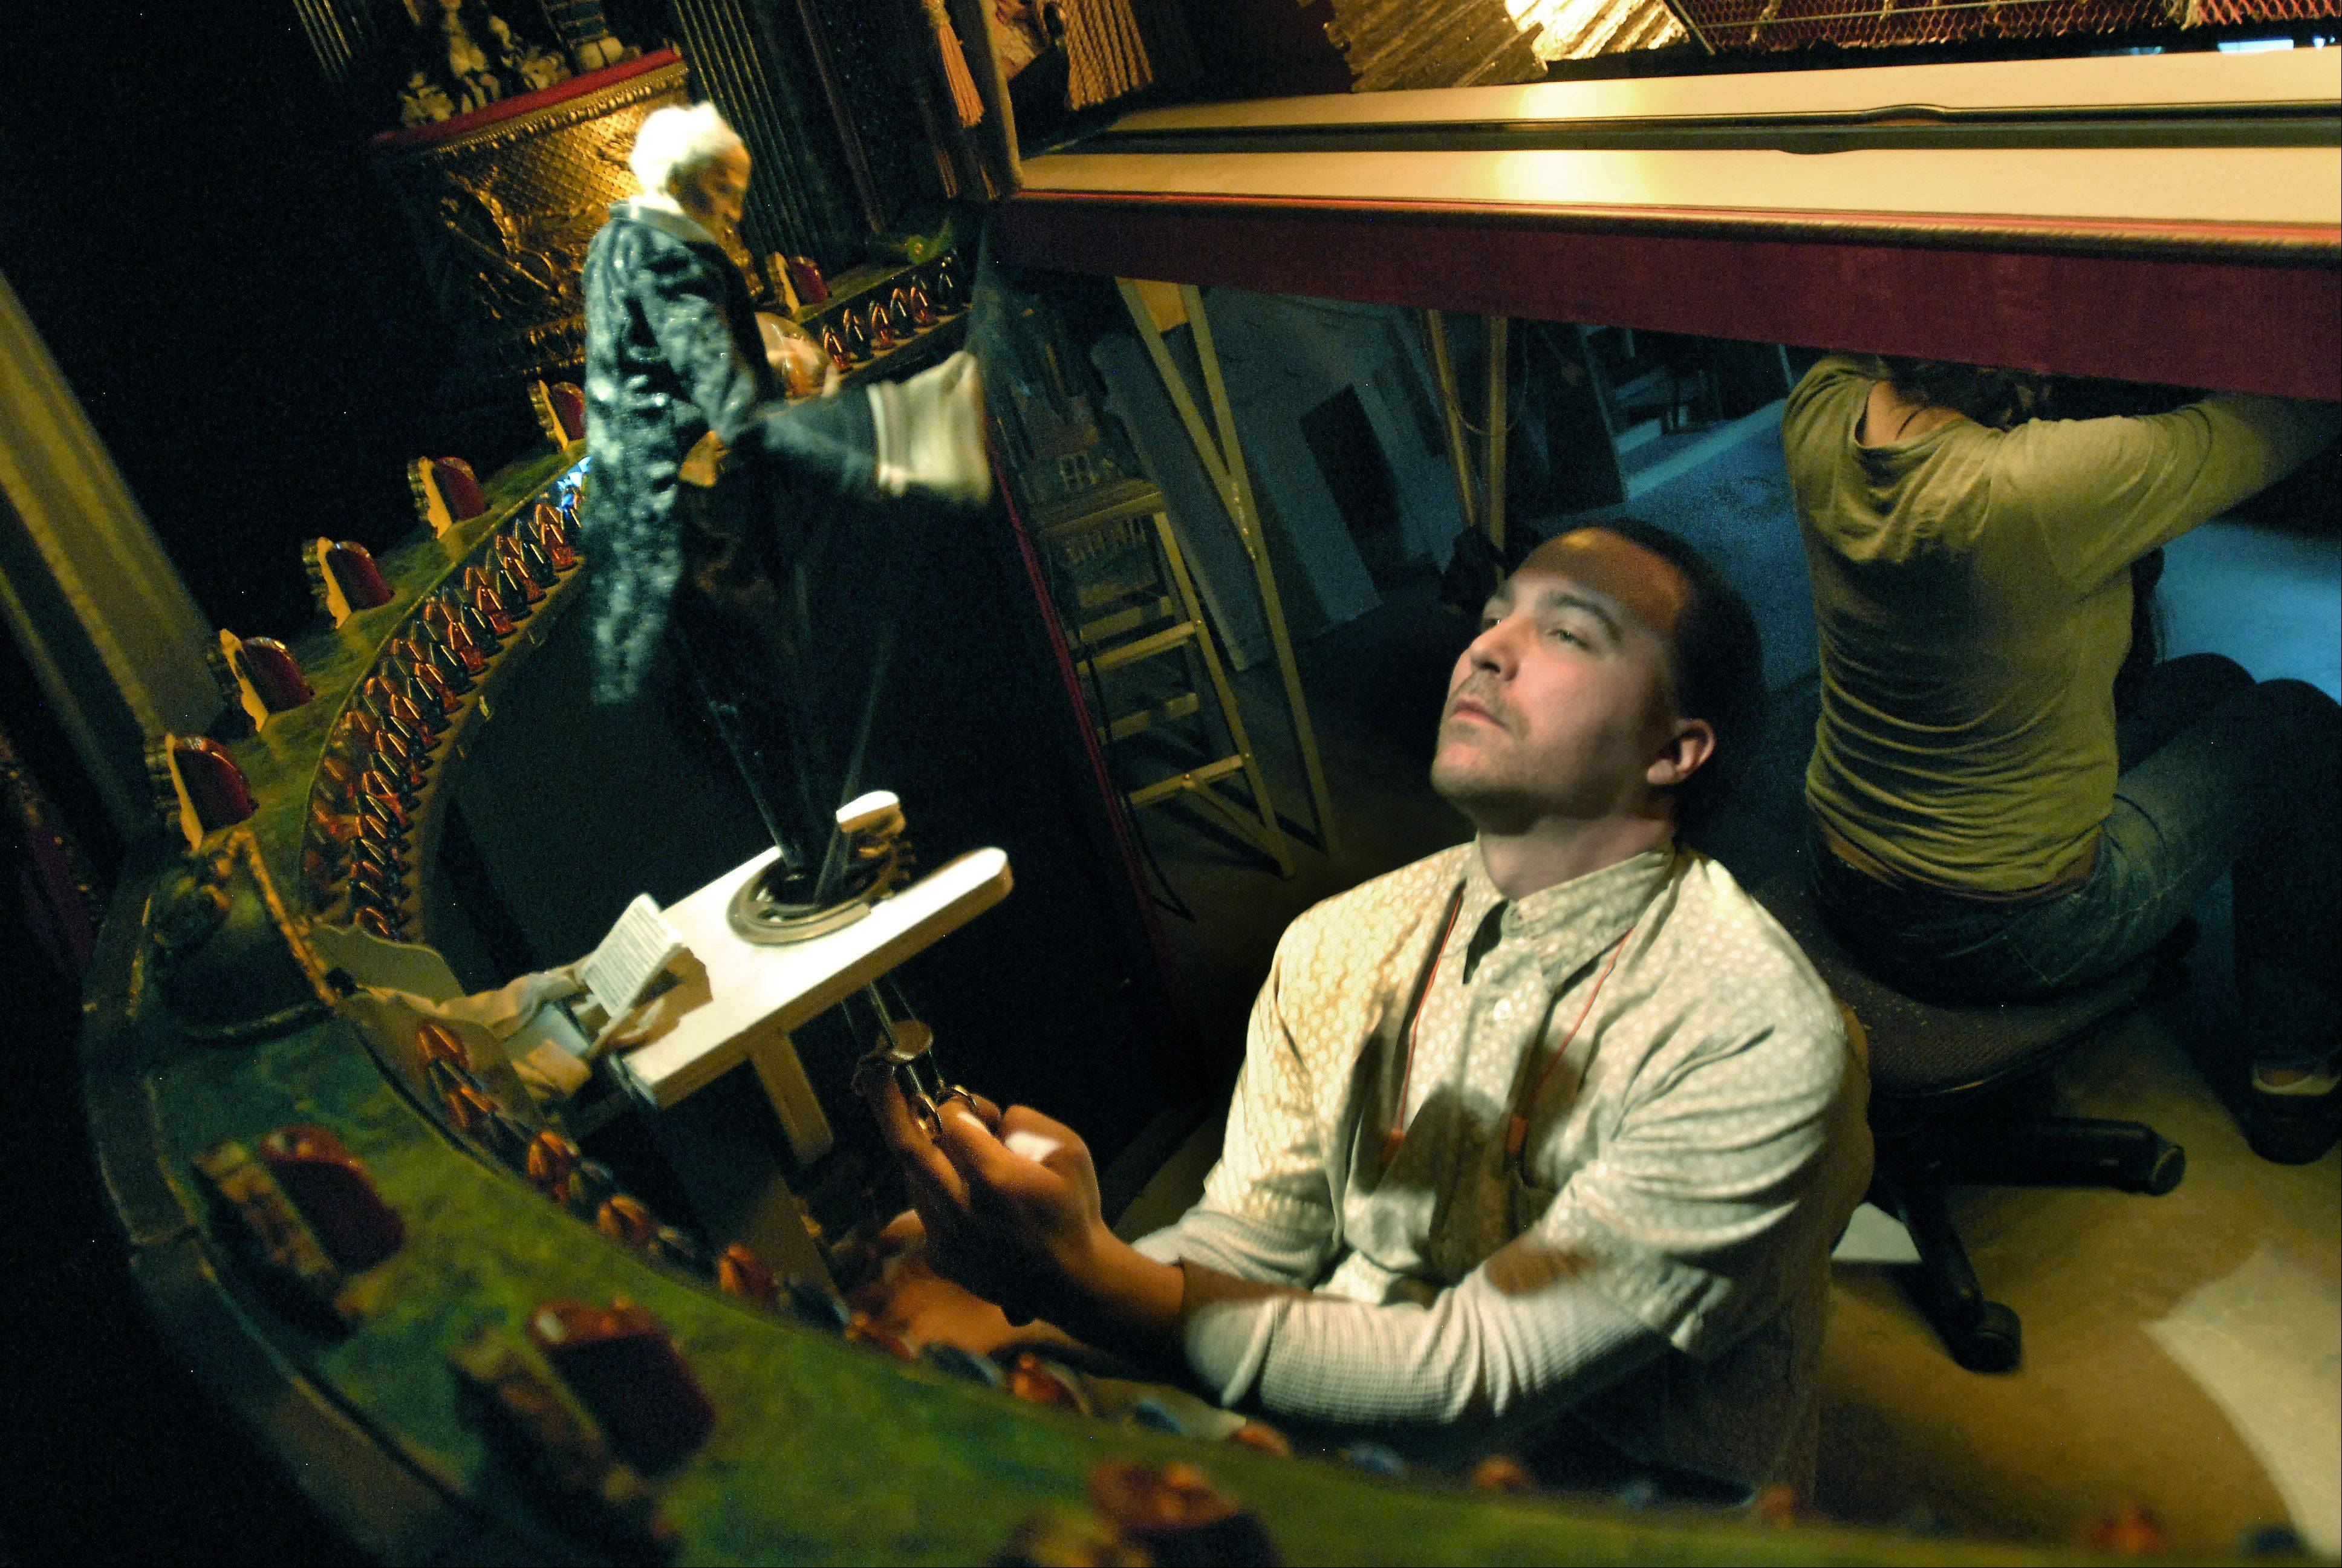 Bill Zars/bzars@dailyherald.com Puppeteer Justin Snyder operates the conductor at Opera in Focus in Rolling Meadows.